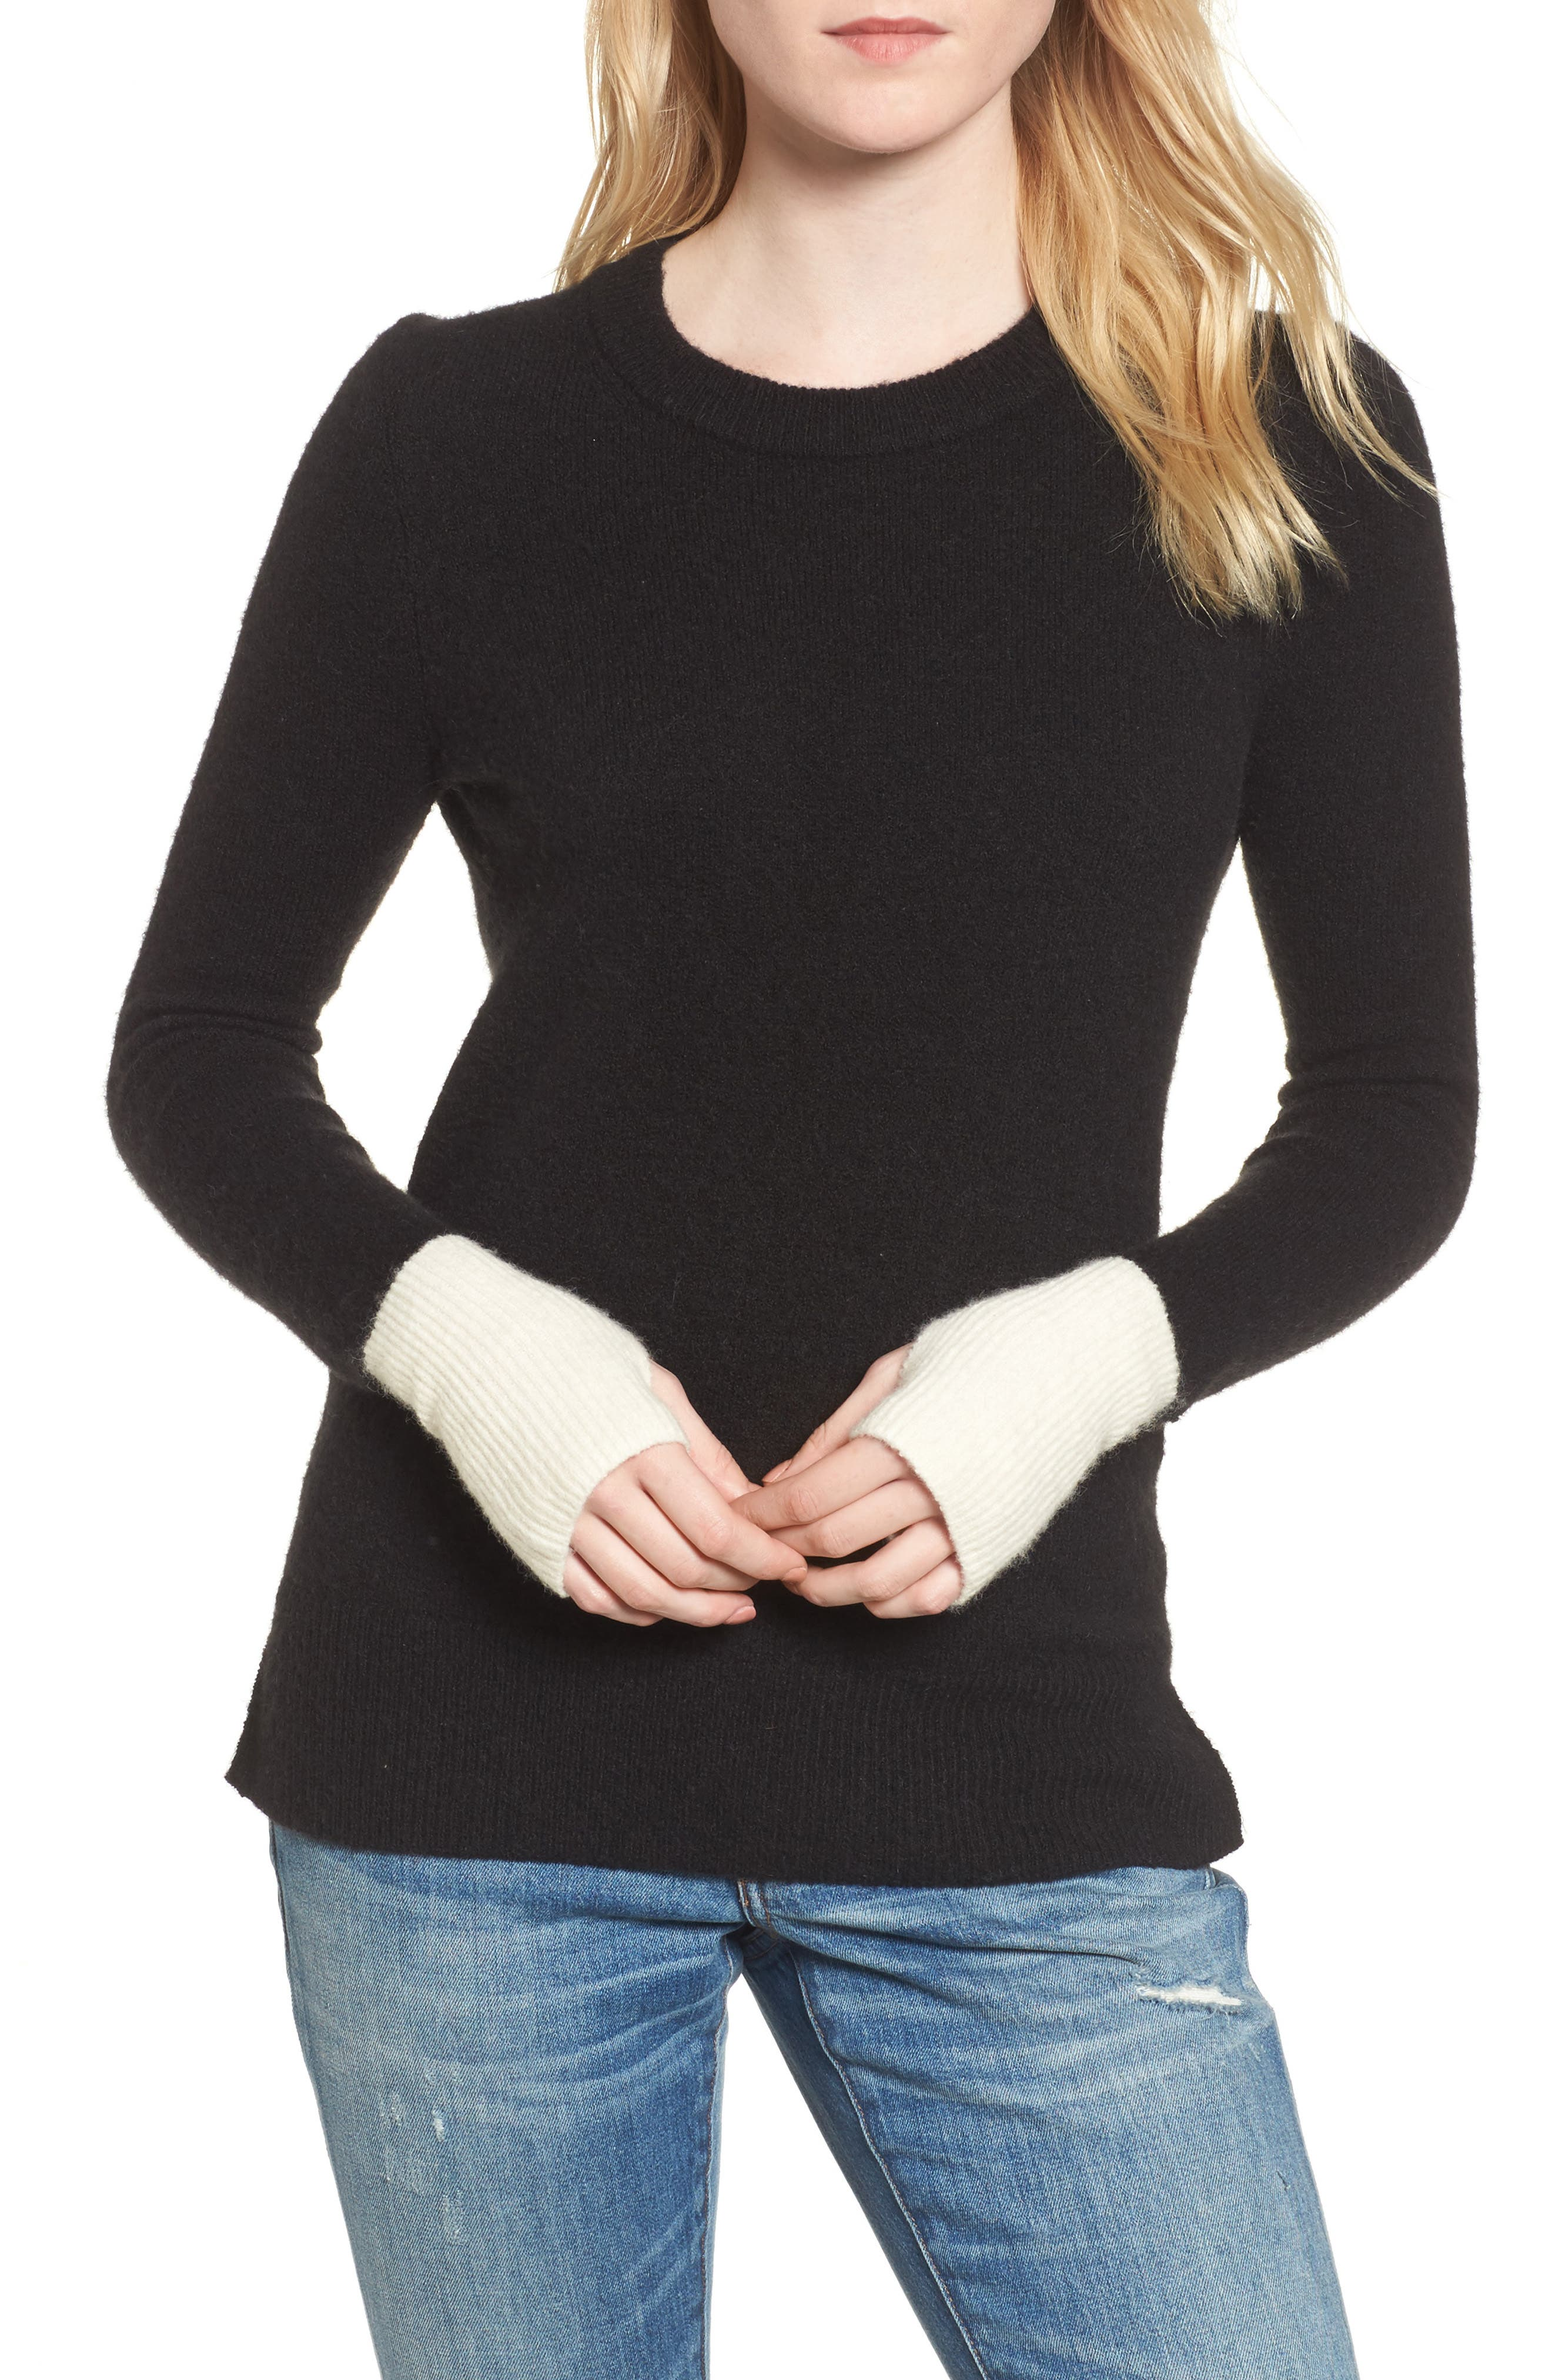 Fremont Colorblock Pullover Sweater,                         Main,                         color, 010